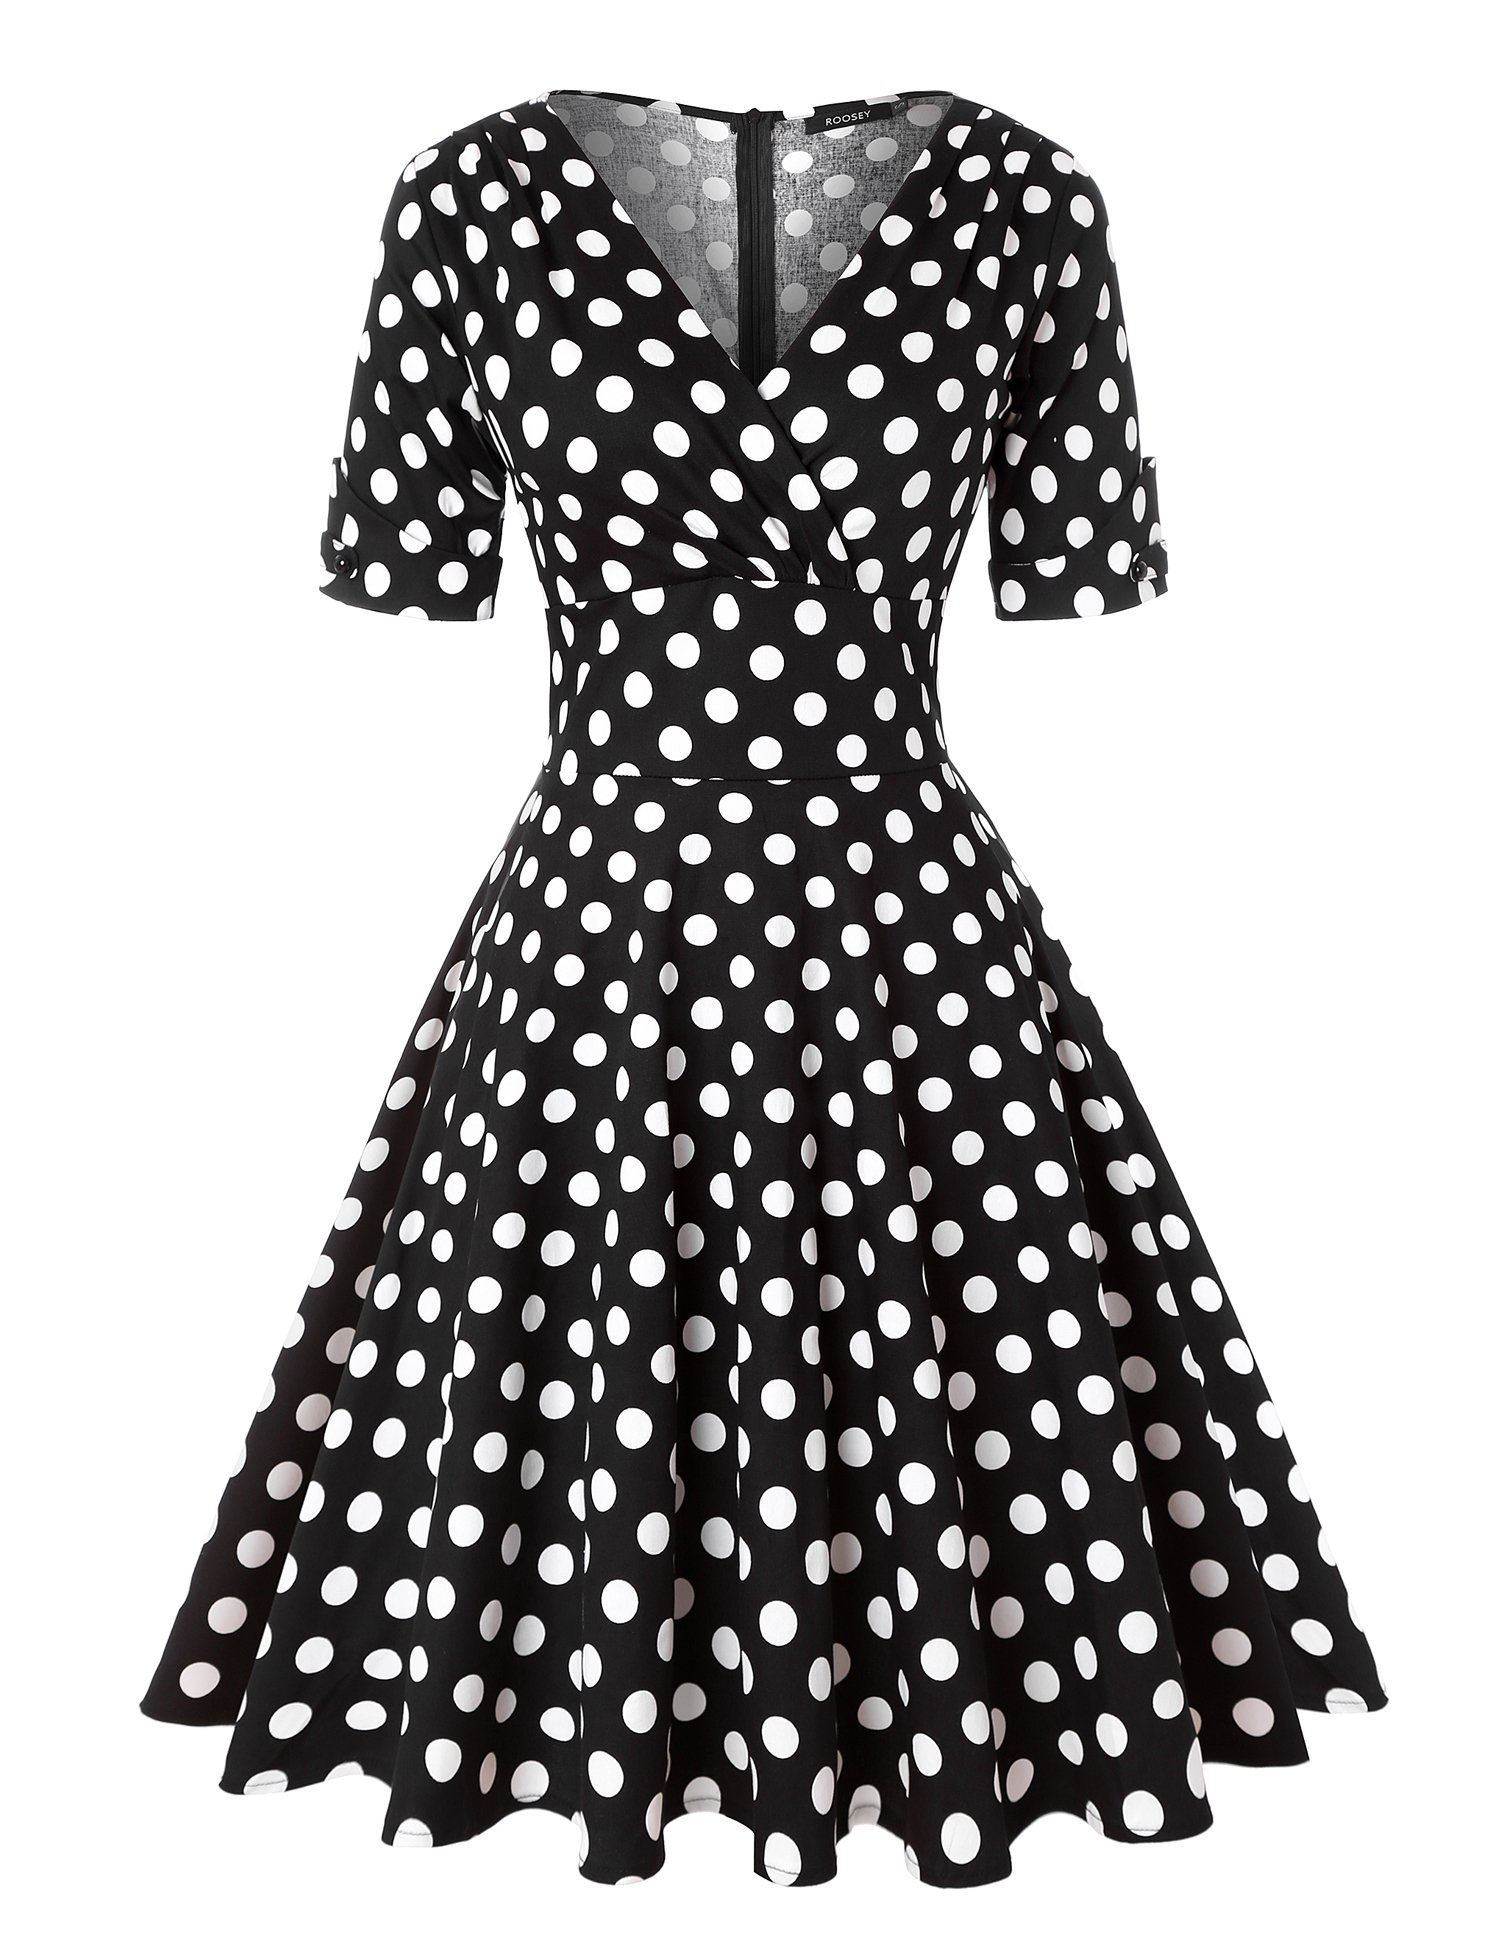 ROOSEY Women Vintage 1950s Retro Rockabilly Prom Dresses V Neck Half Sleeve